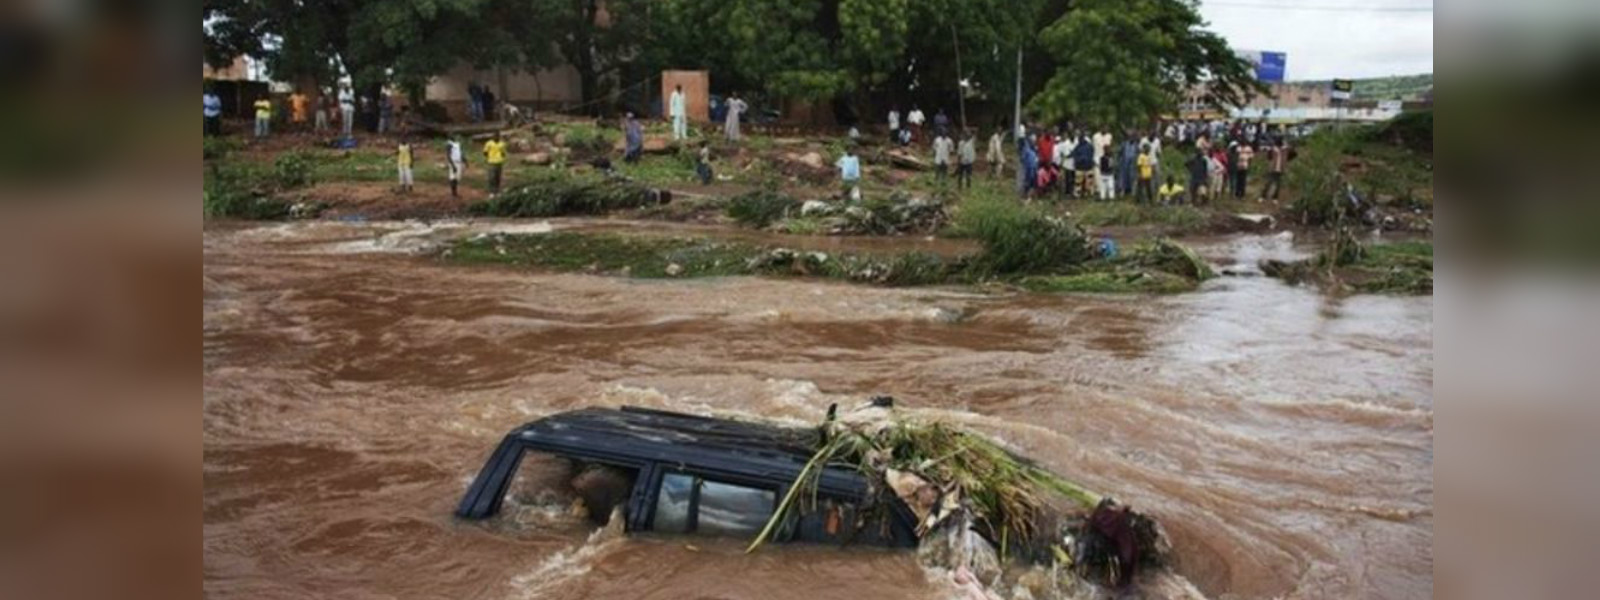 At least 15 killed in Mali floods